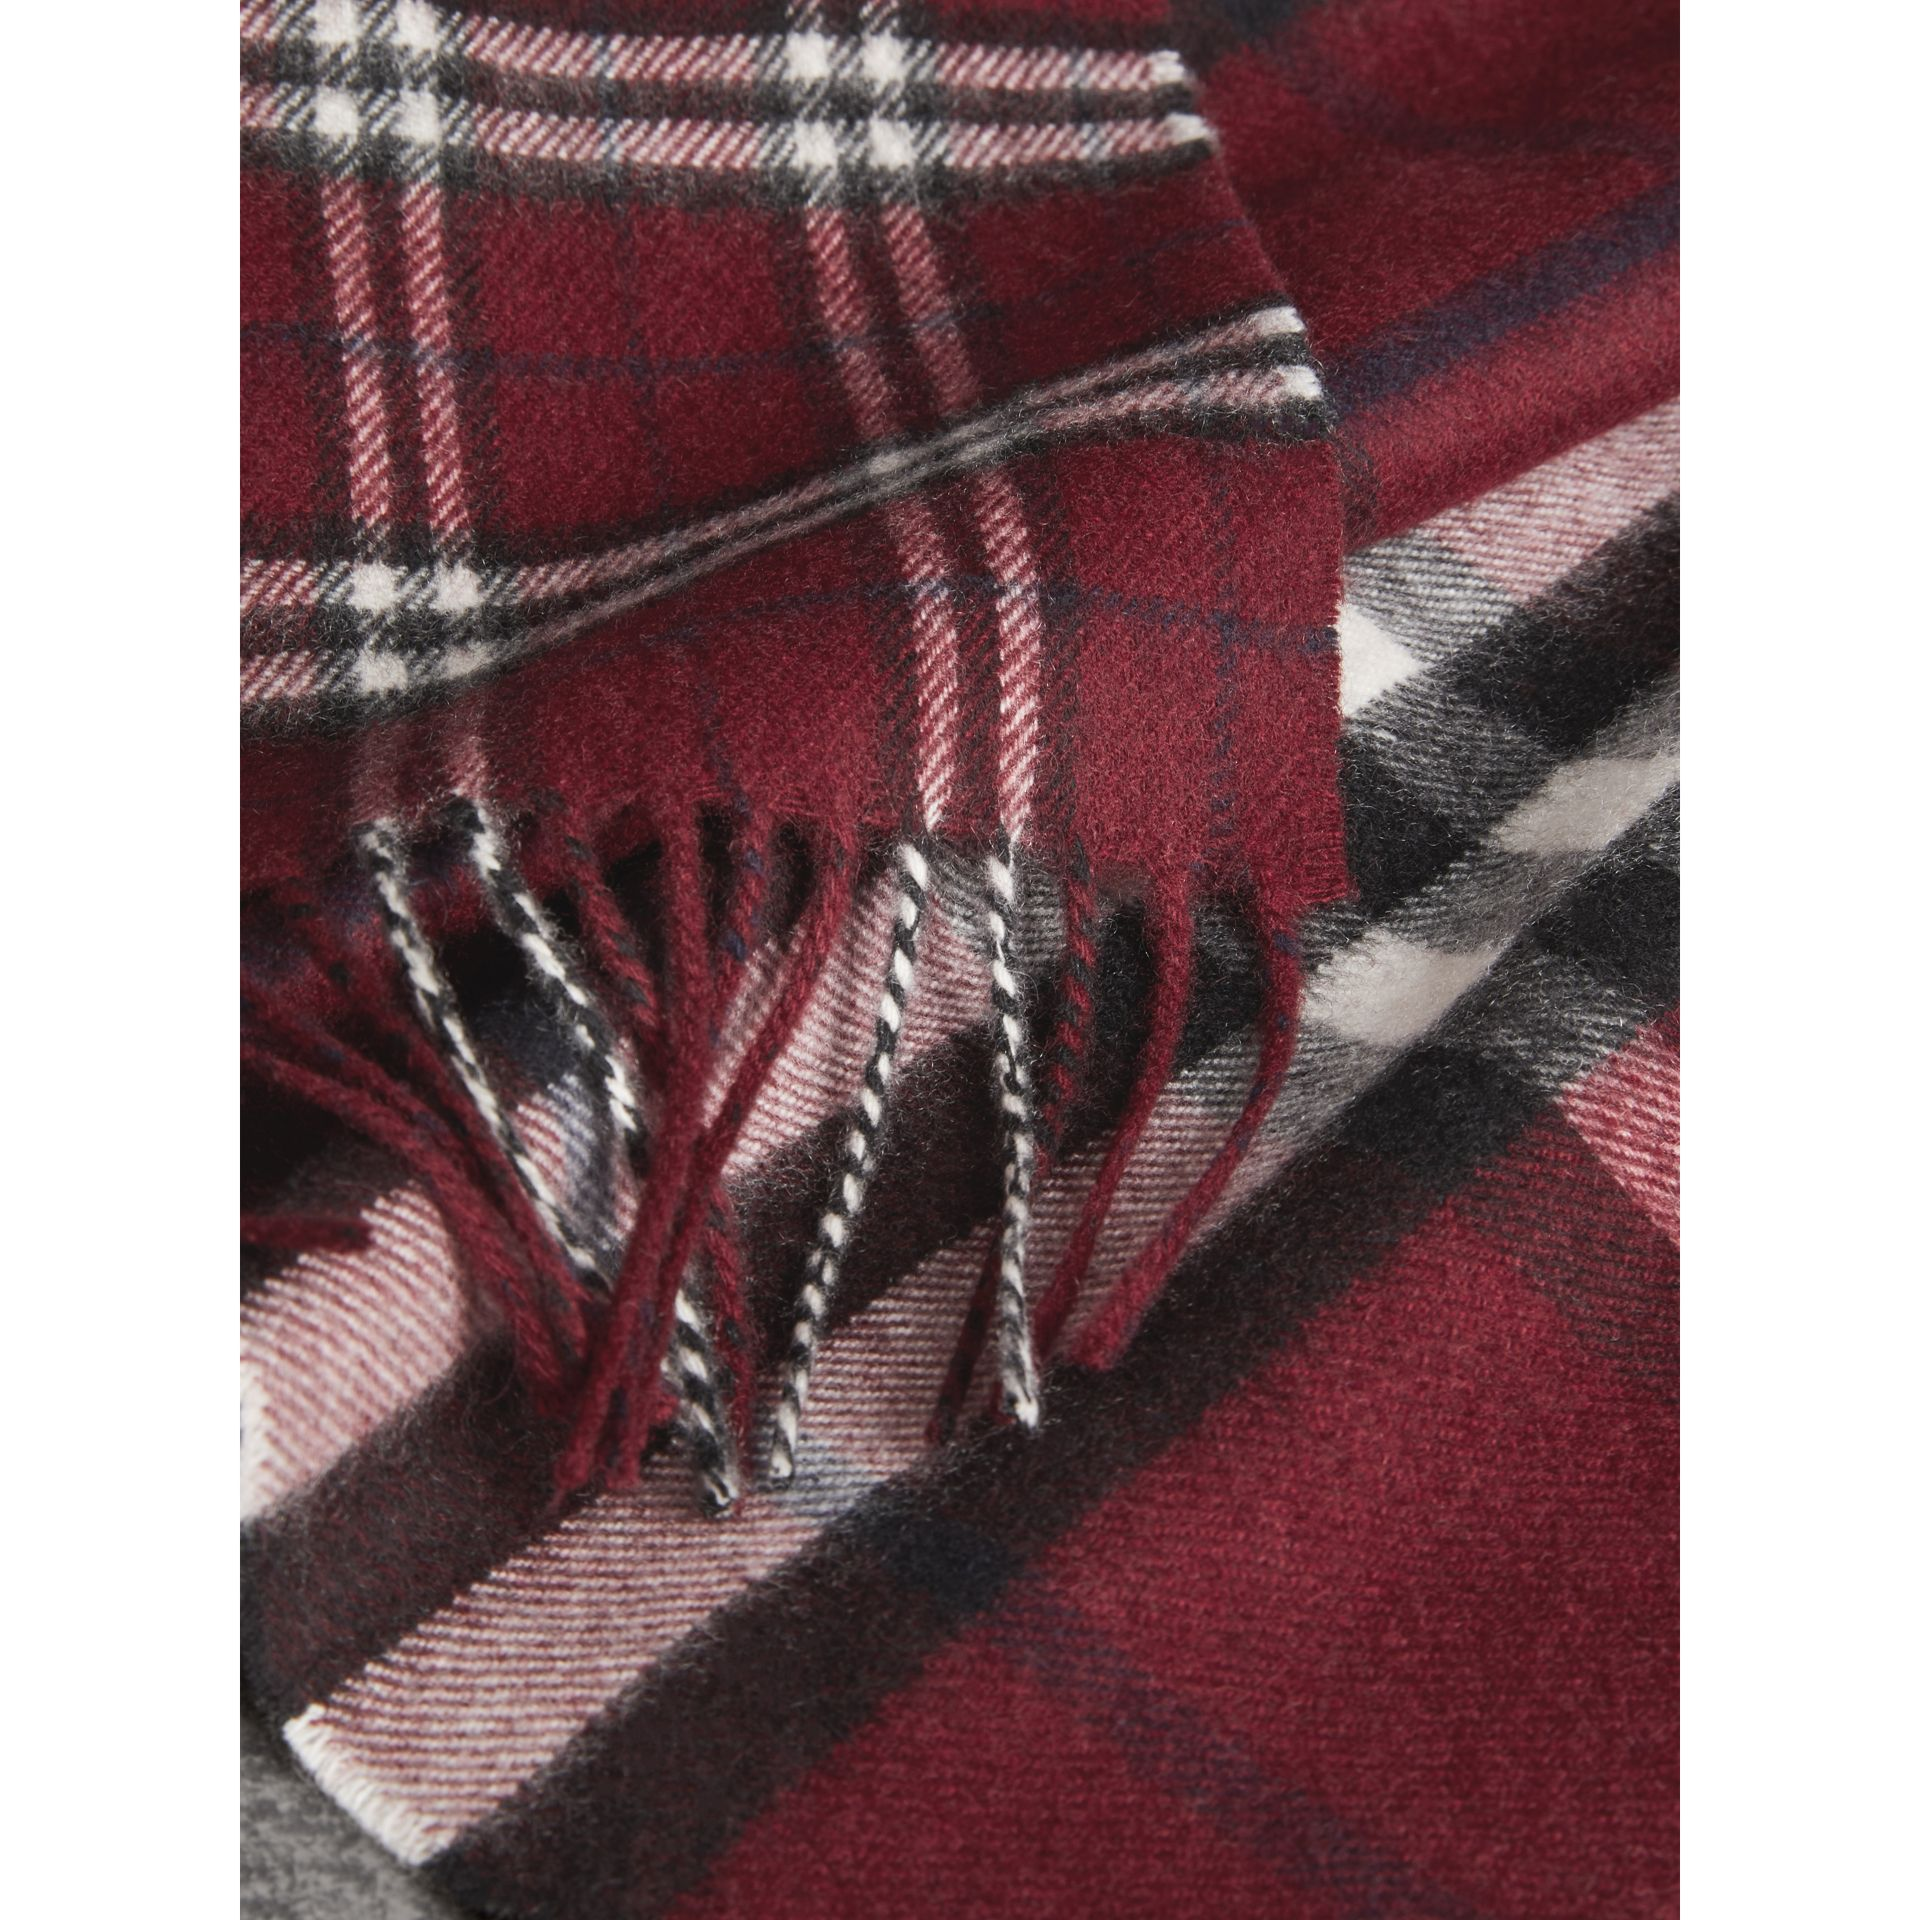 Écharpe en cachemire à motif check réversible Gosha x Burberry (Bordeaux) | Burberry - photo de la galerie 6